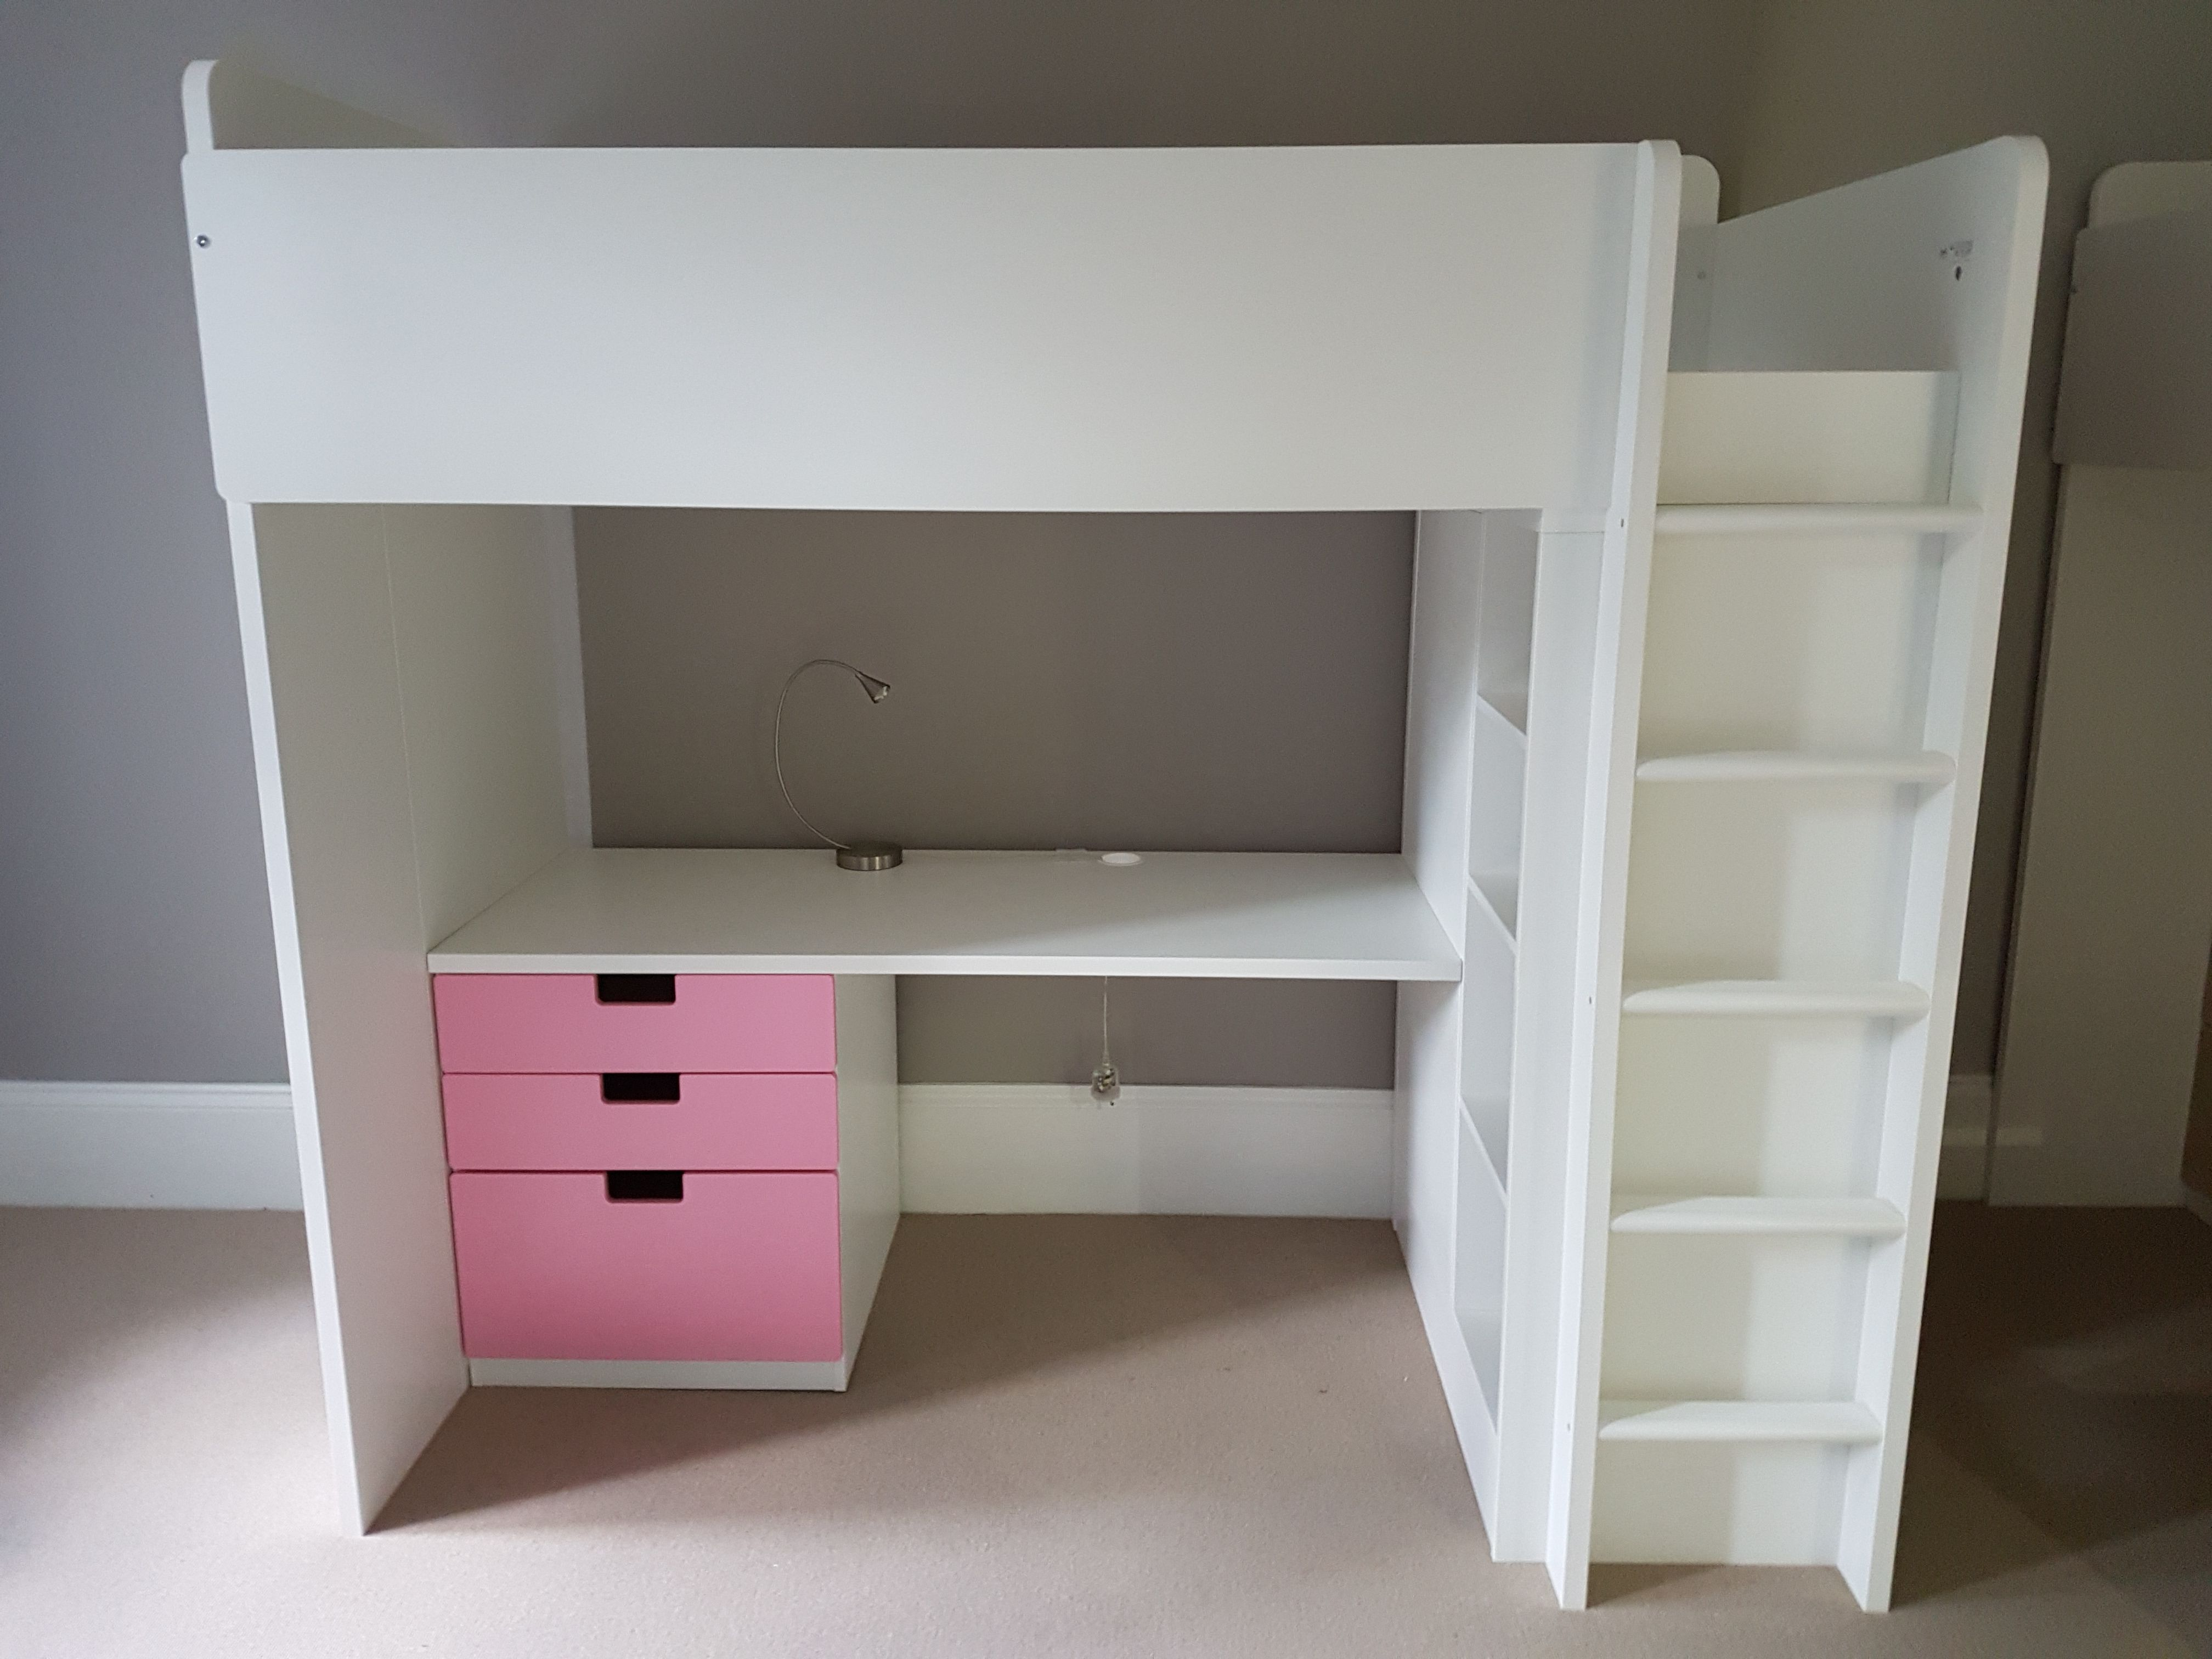 Solid Ikea Stuva loft bed with desk and 2 doors, very tall